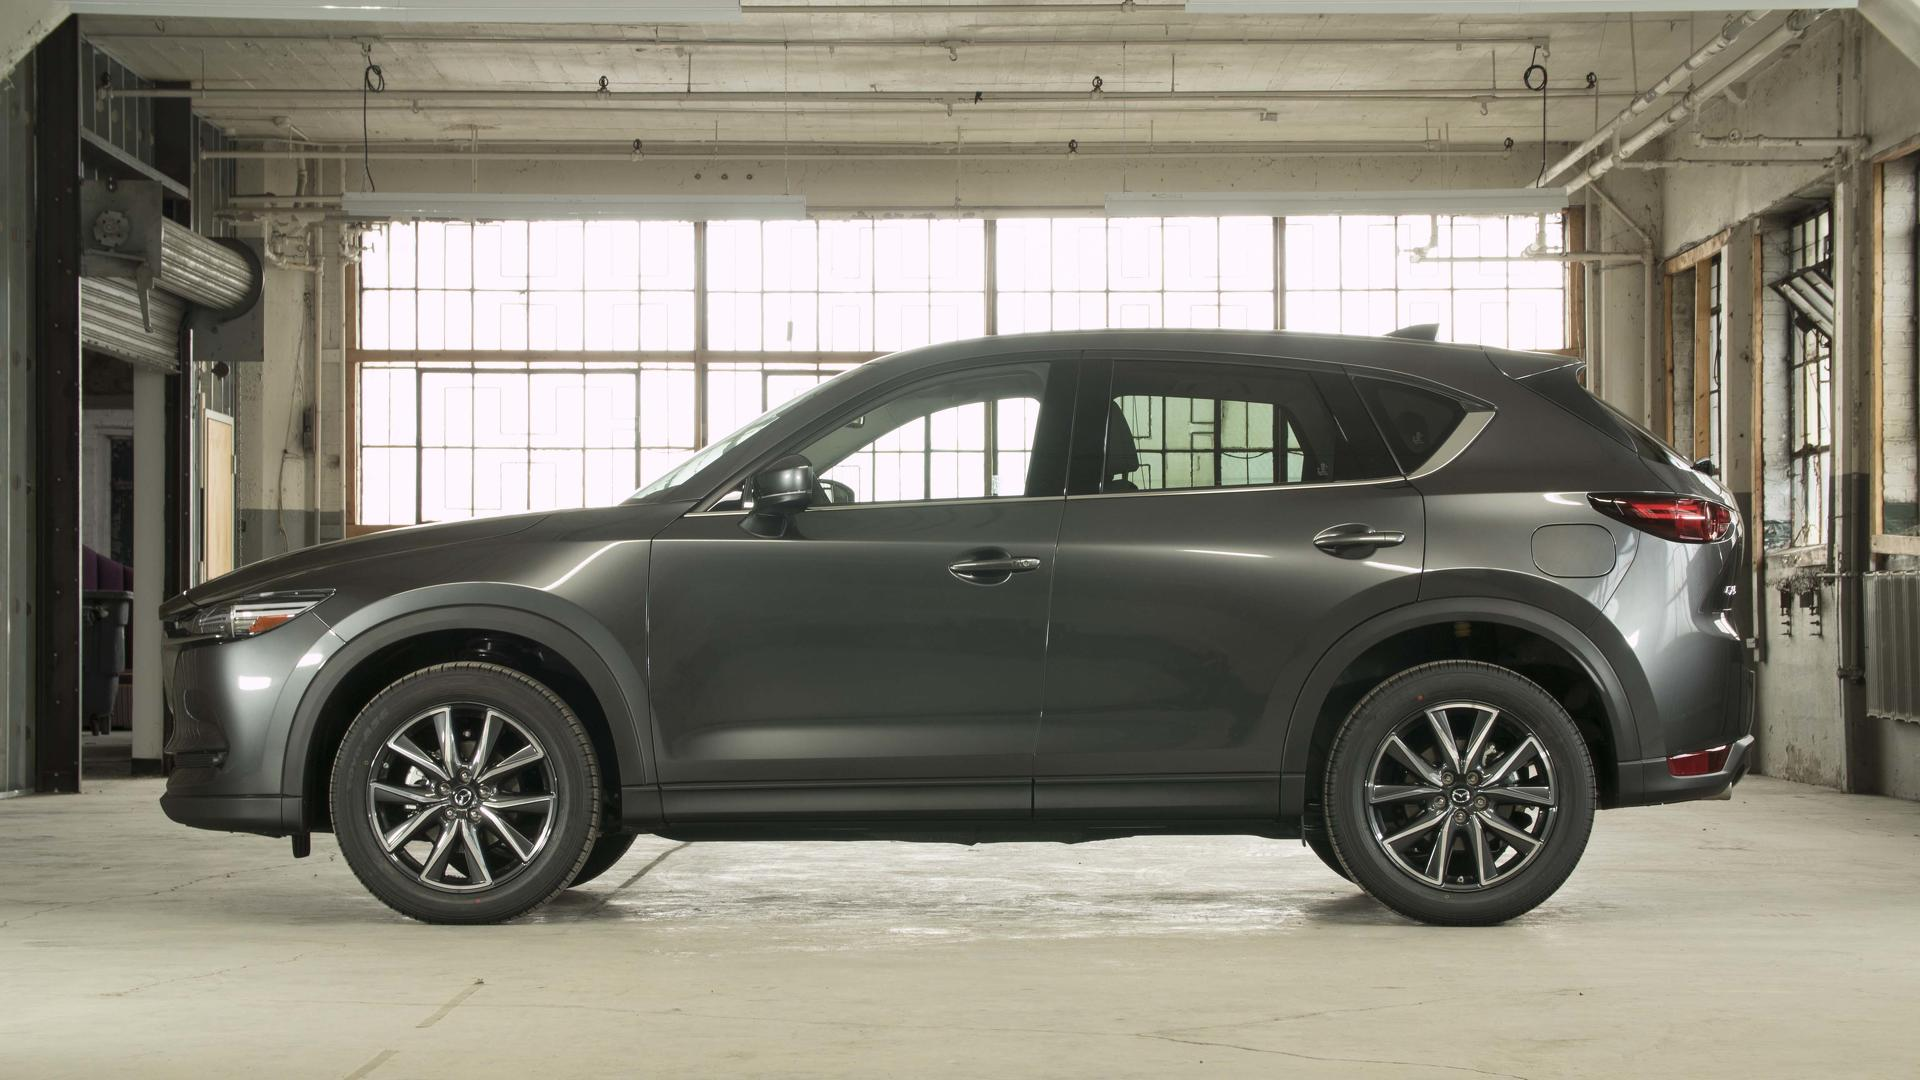 2017 mazda cx-5 | why buy?